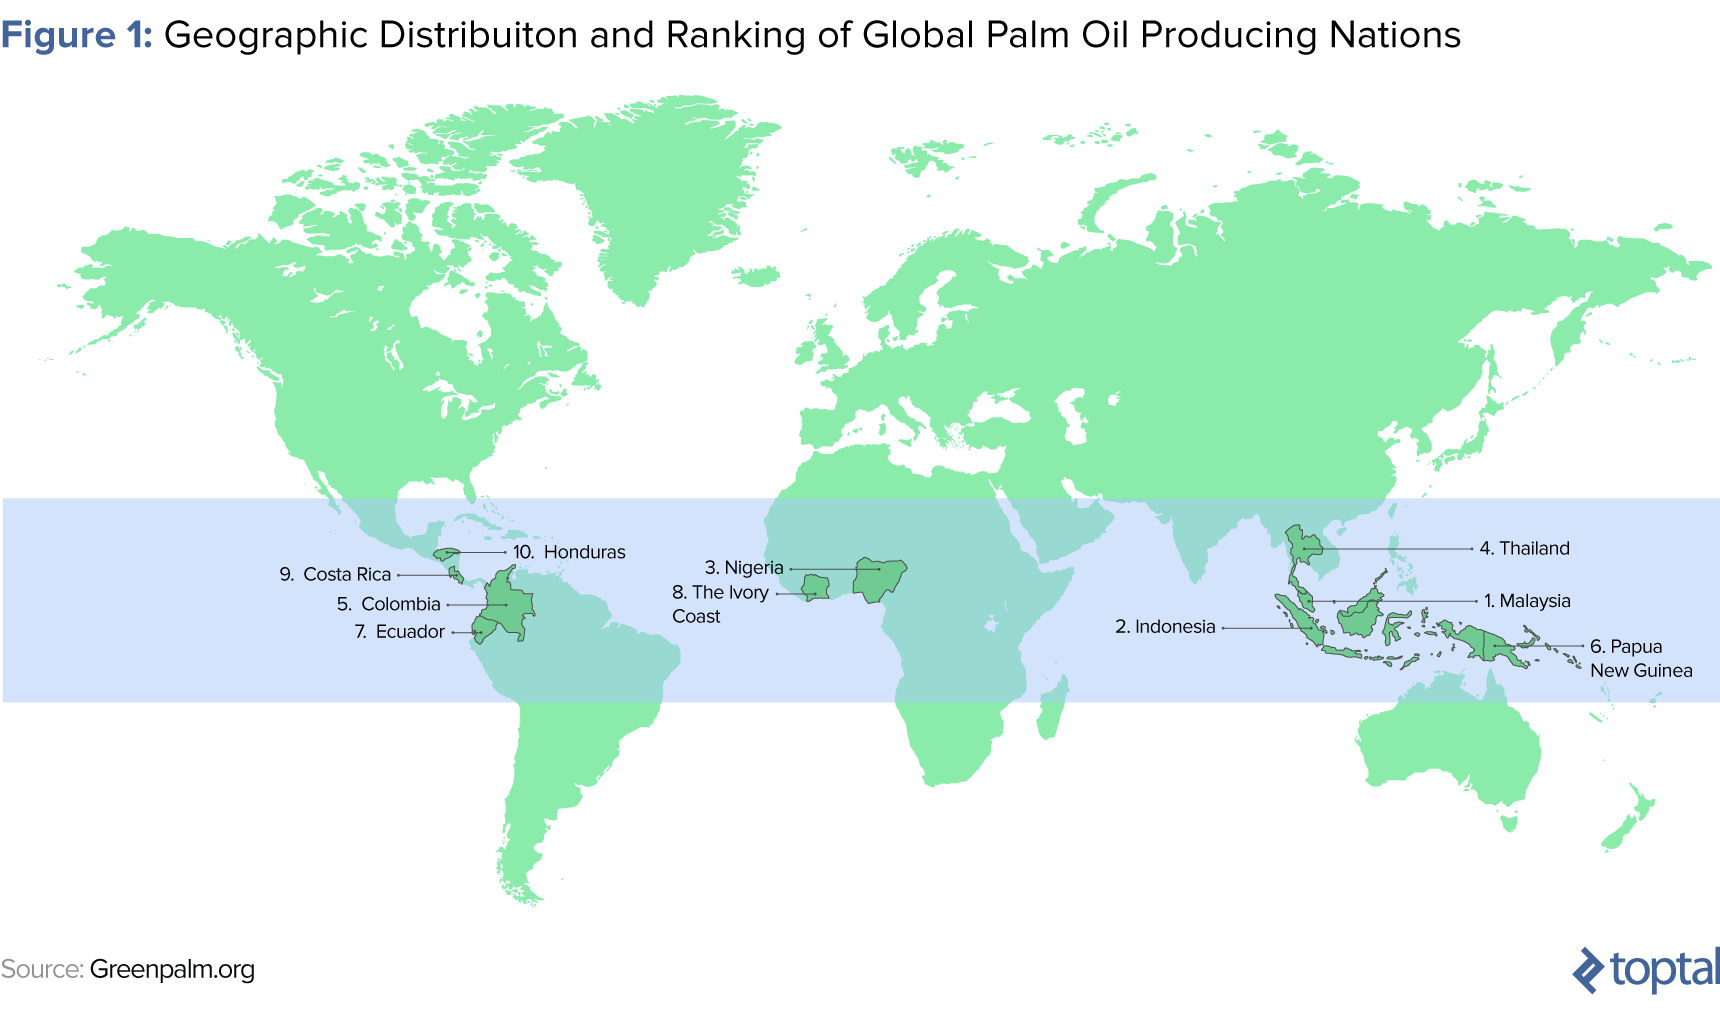 Figure 1: Geographic Distribution and Ranking of Global Palm Oil Producing Nations